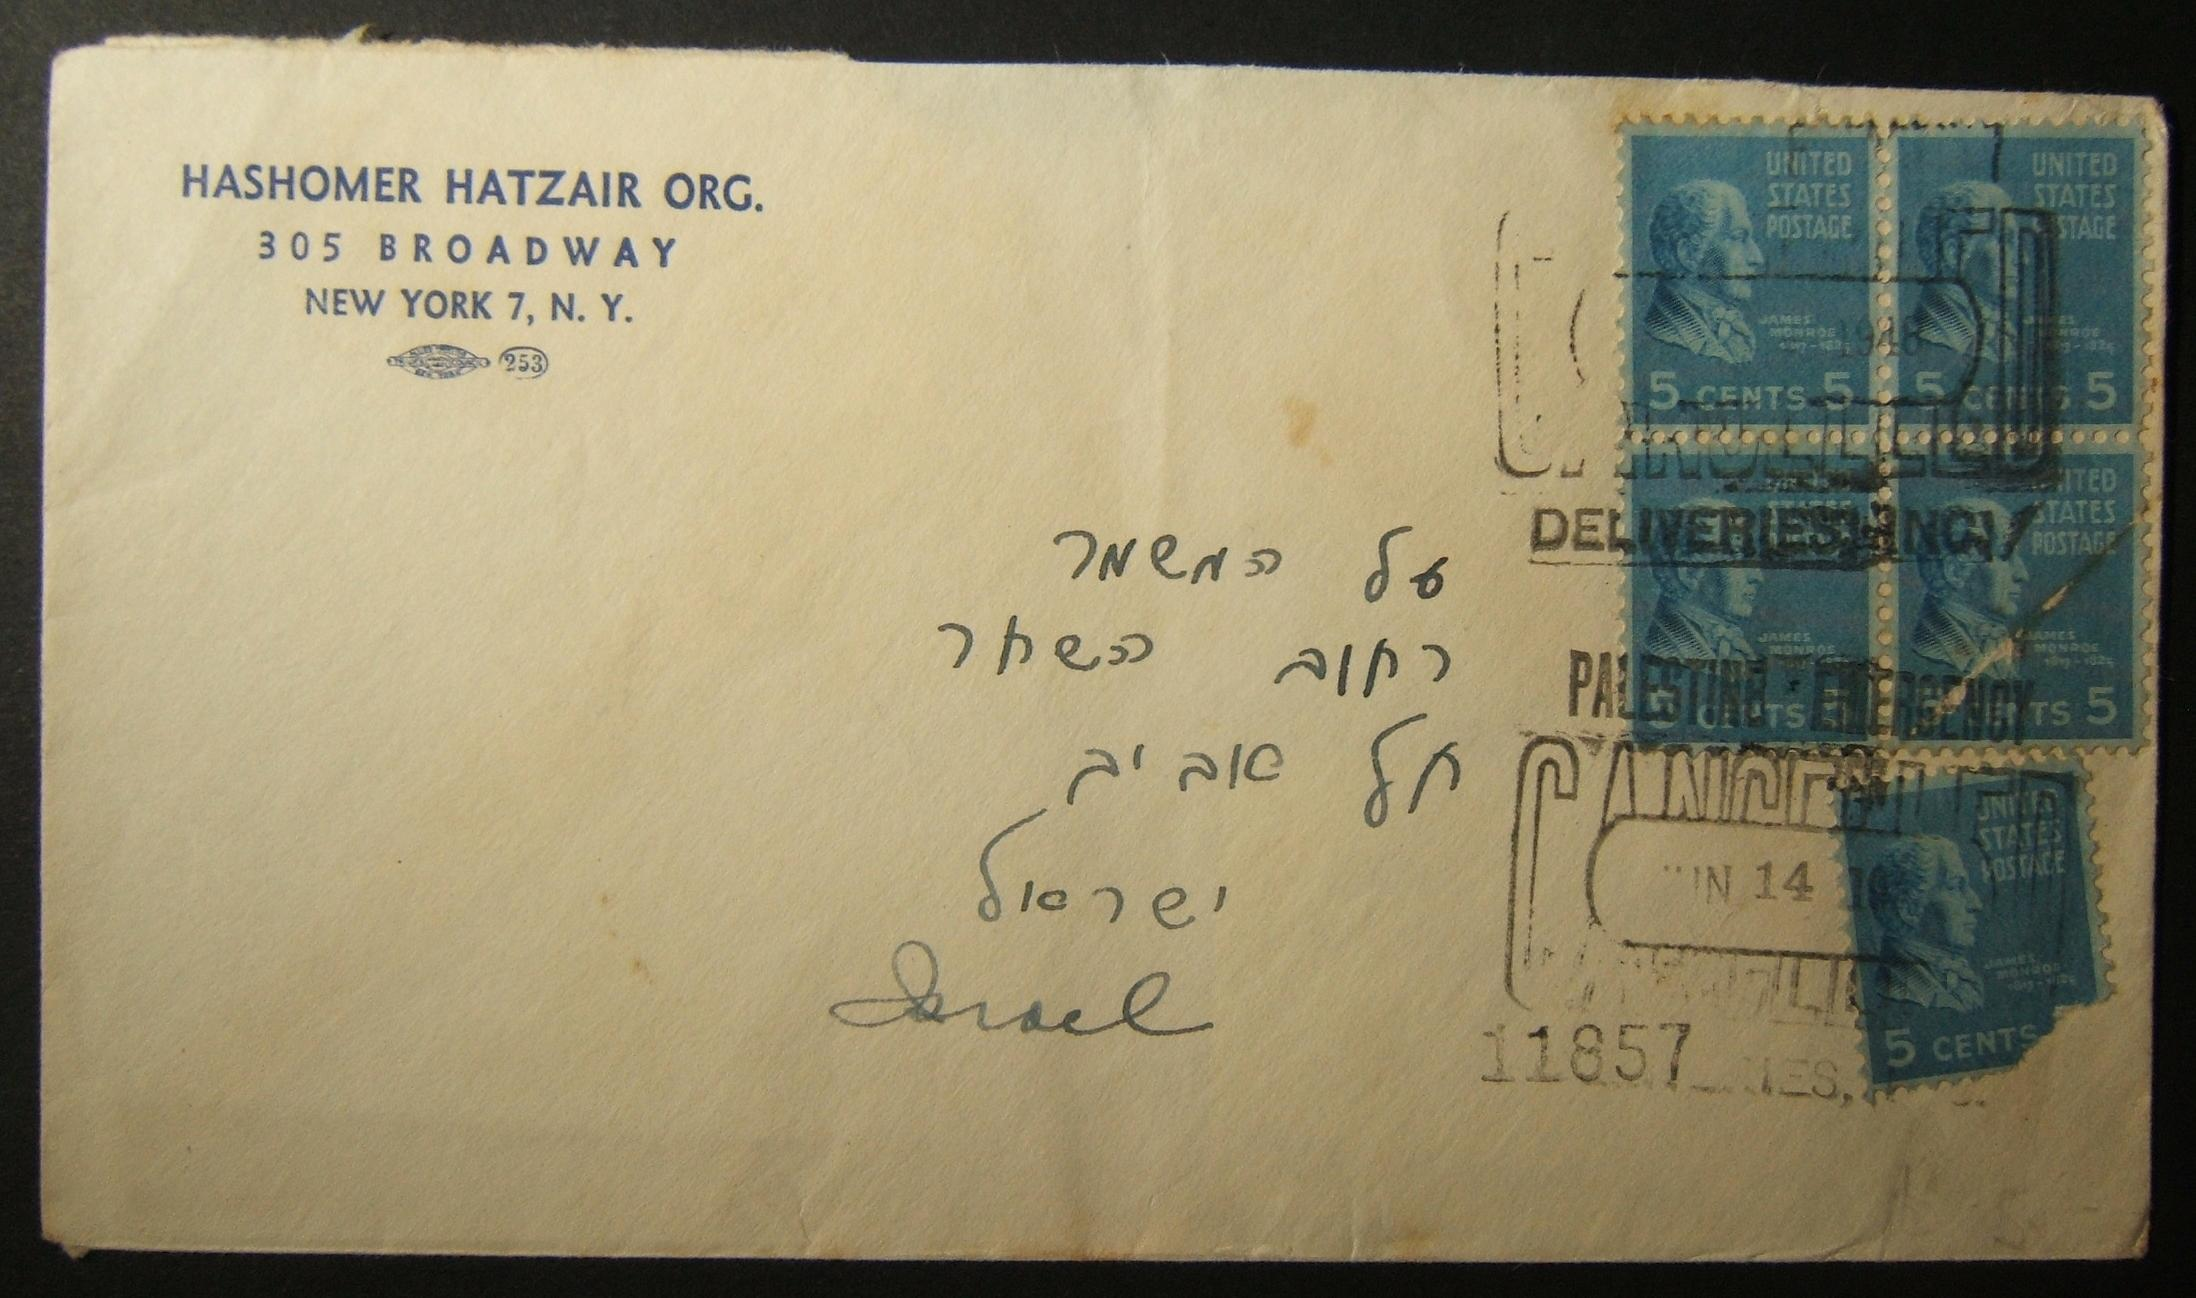 1948 PEDI airmail: HaShomer HaTzair stationary comm. cv ex NYC to TEL AVIV, franked 25c regular airmail rate tied by 2 strikes of JUNE 14 1948 Type II cancels and numbered 11857; s